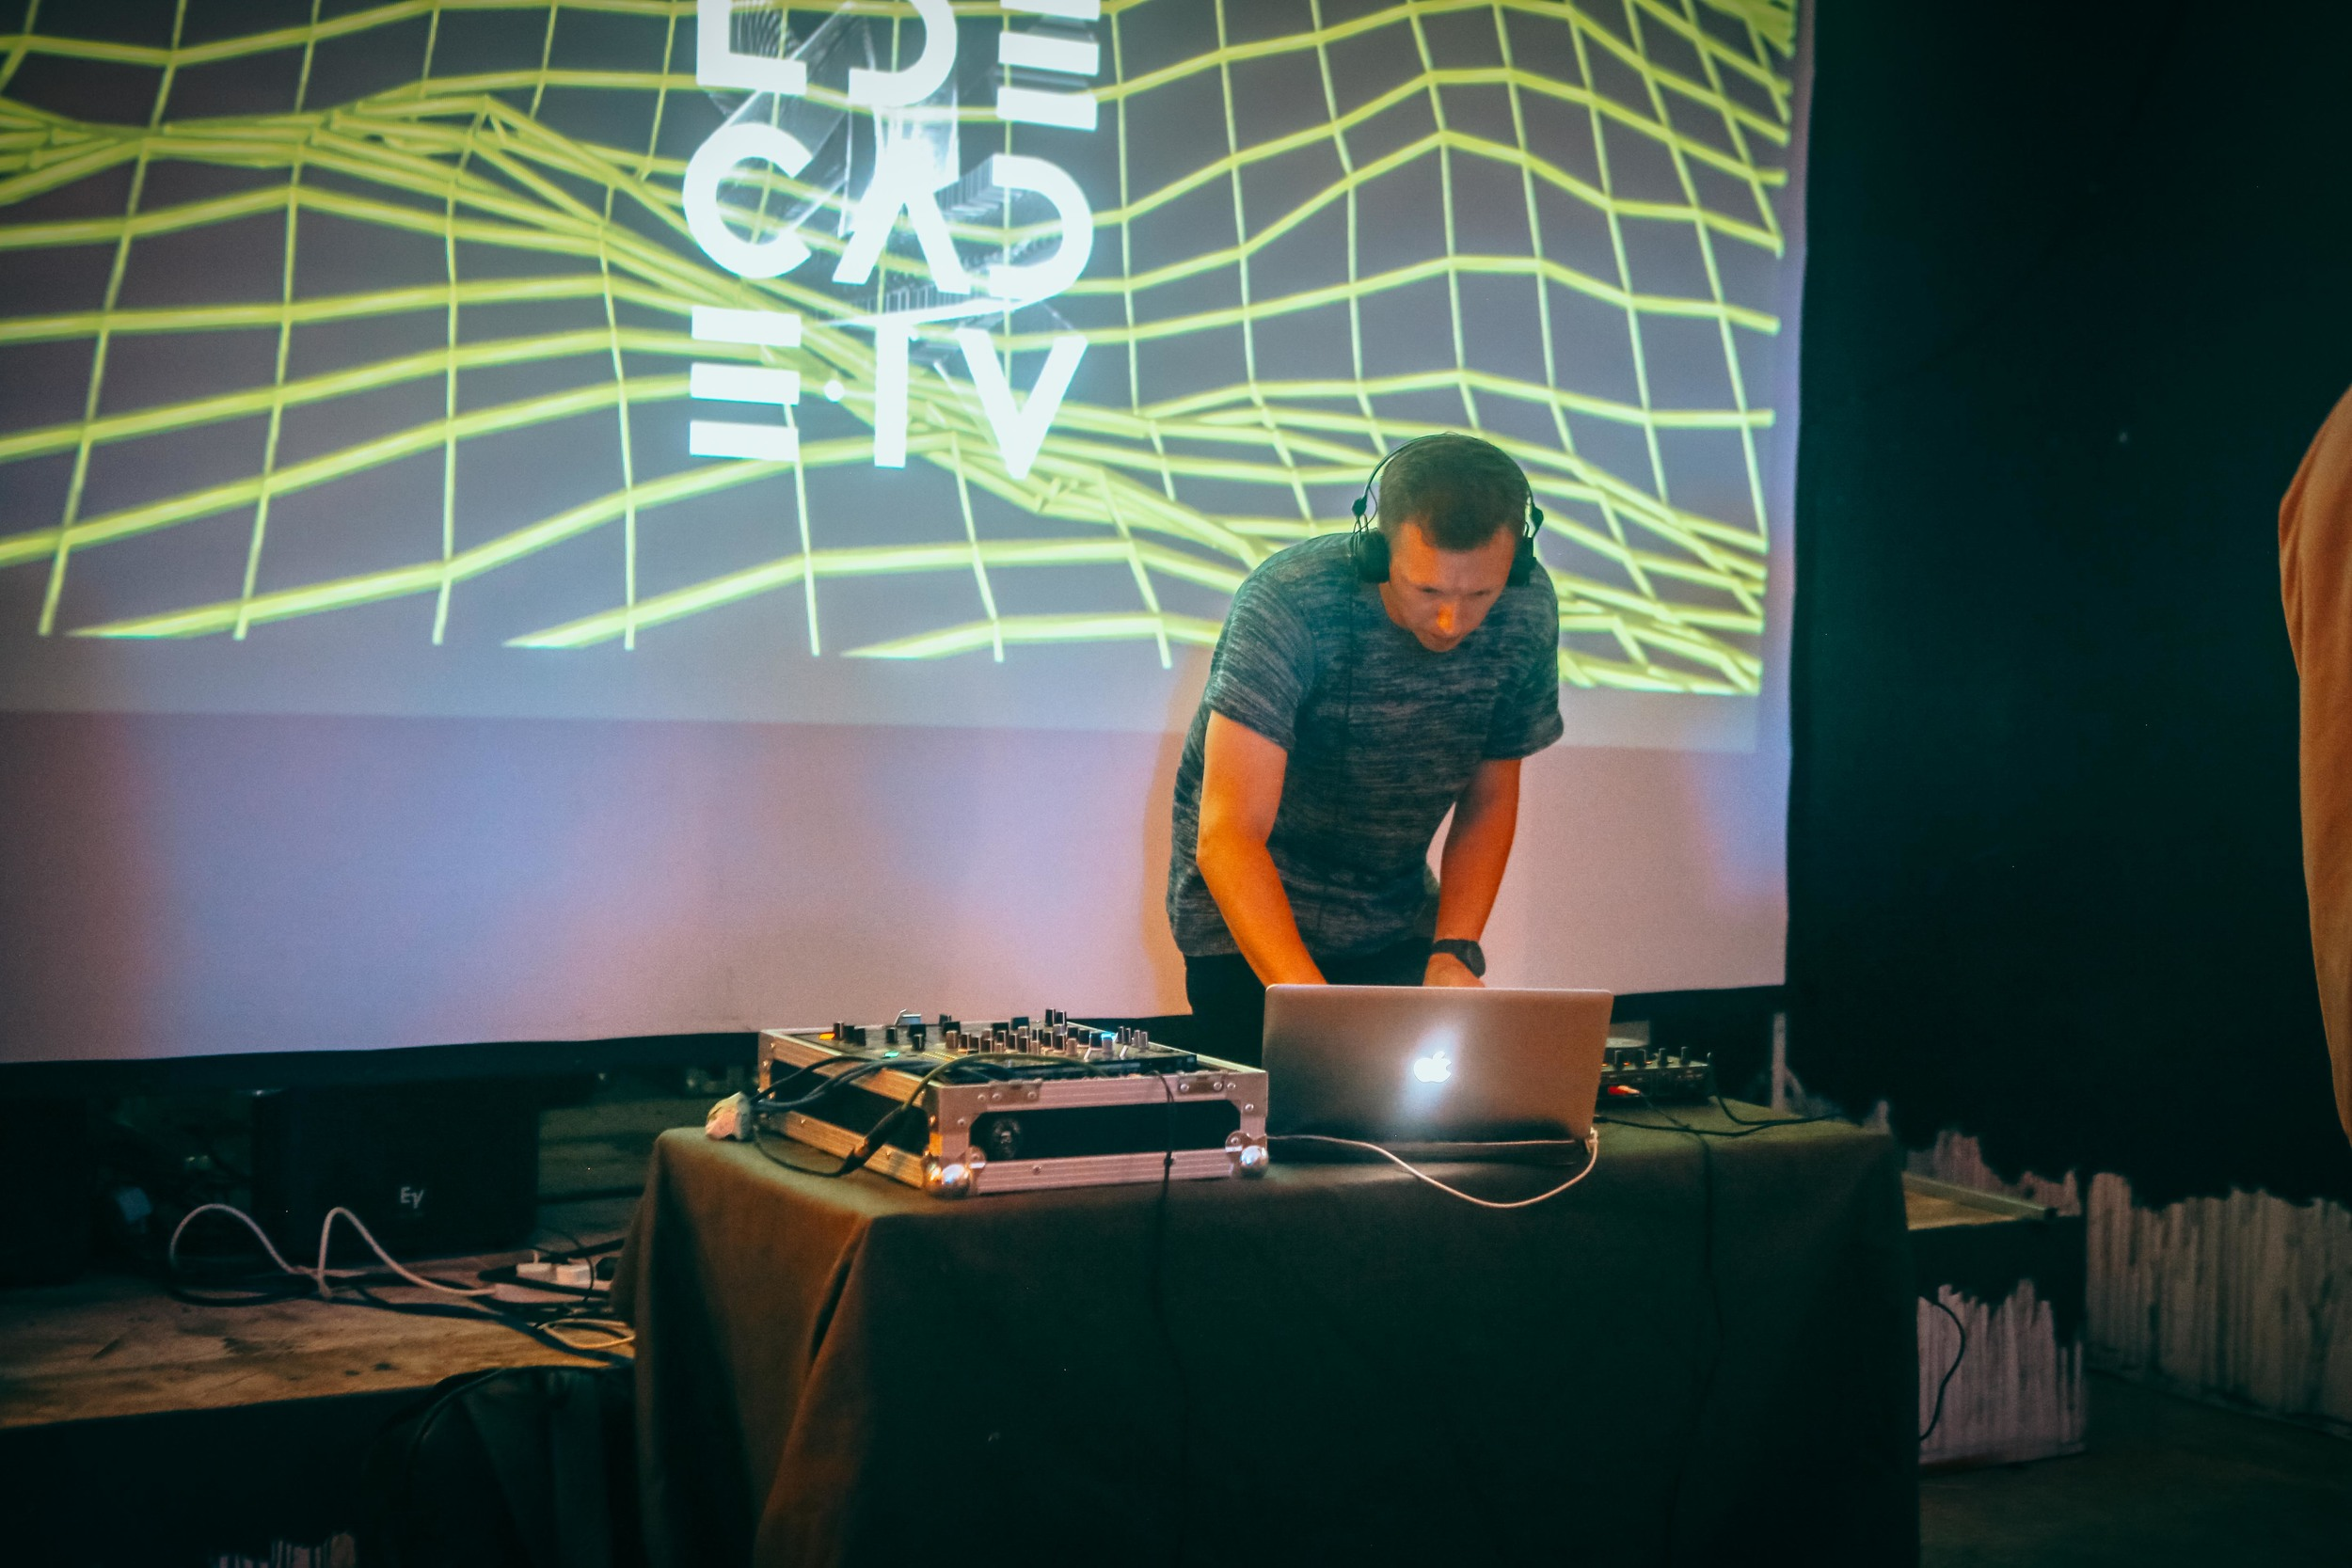 Ben Paul at Digital Decade London opening night, July 4. Photo by So!Fraiche